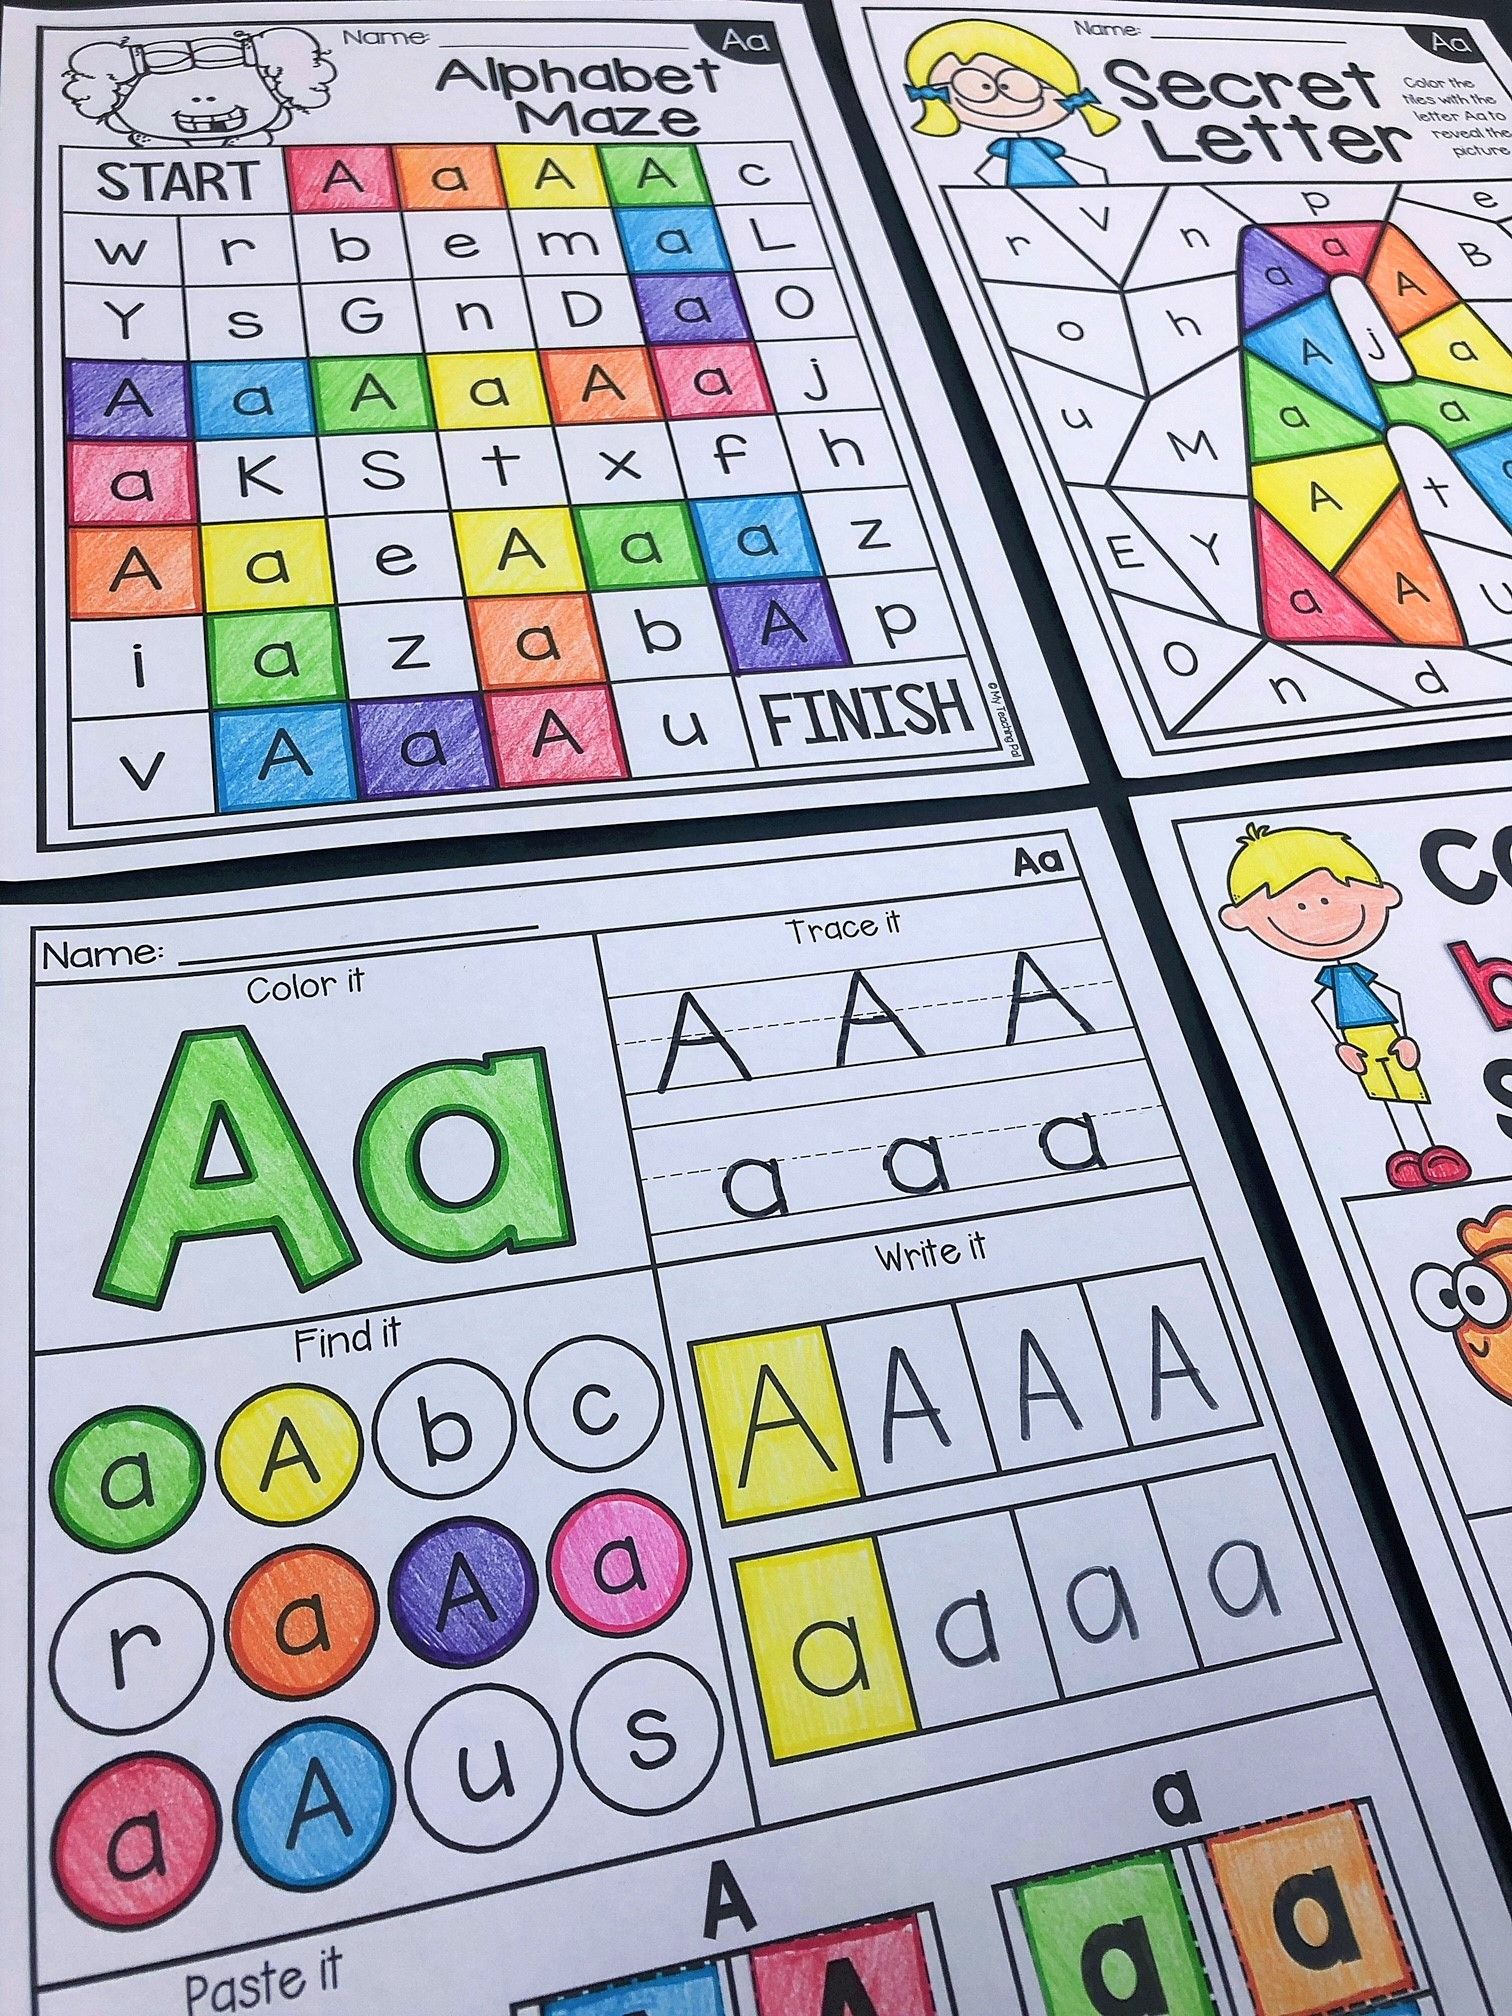 Alphabet Worksheets For Kindergarten And Preschool Get Your Students Practicing All Things Relat Alphabet Worksheets Alphabet Worksheets Kindergarten Alphabet